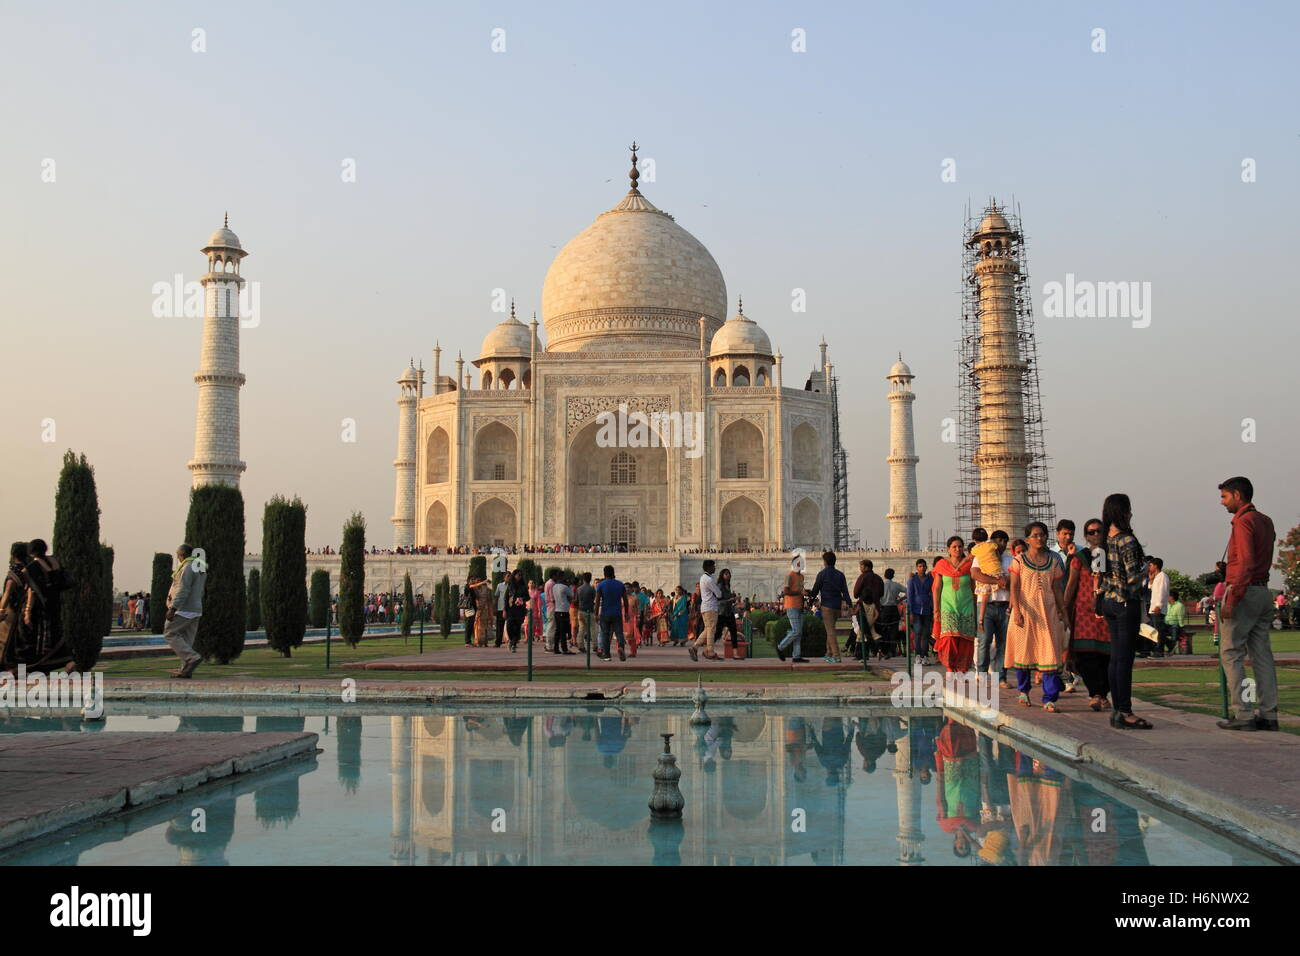 Tomb of Mumtaz Mahal and Shah Jahan, Taj Mahal, Agra ...